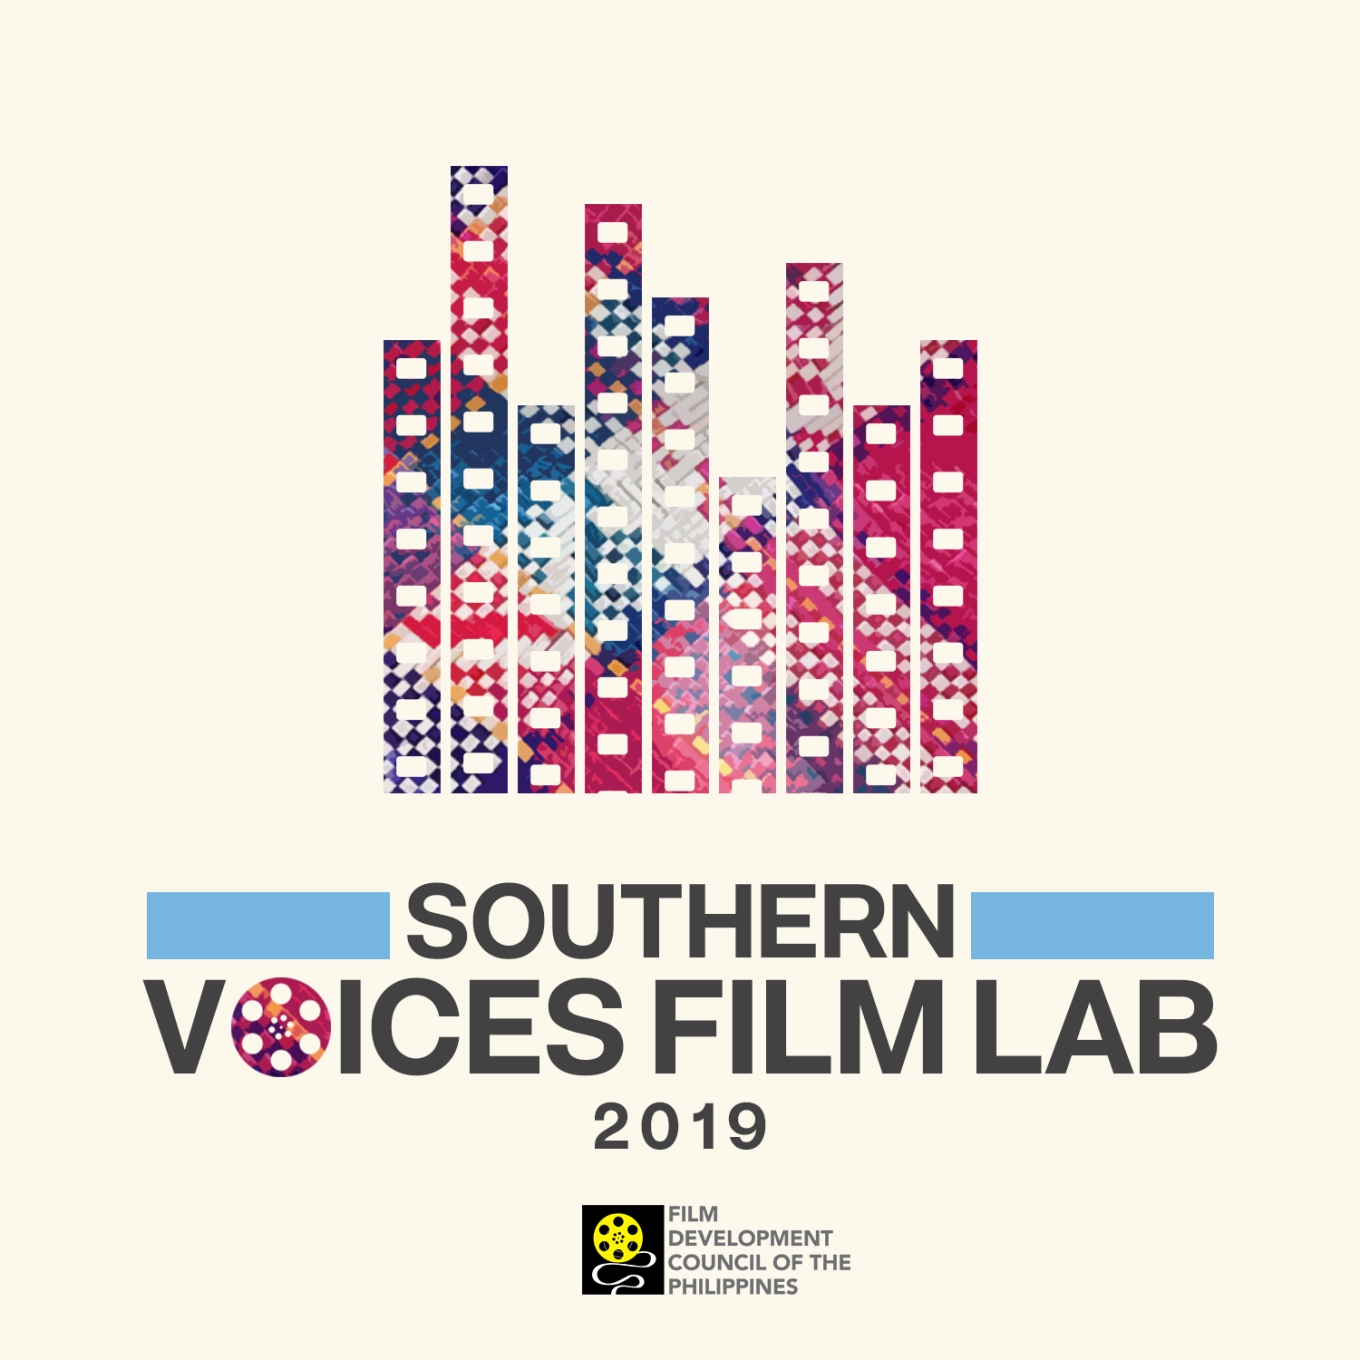 Southern Voices Film Lab logo